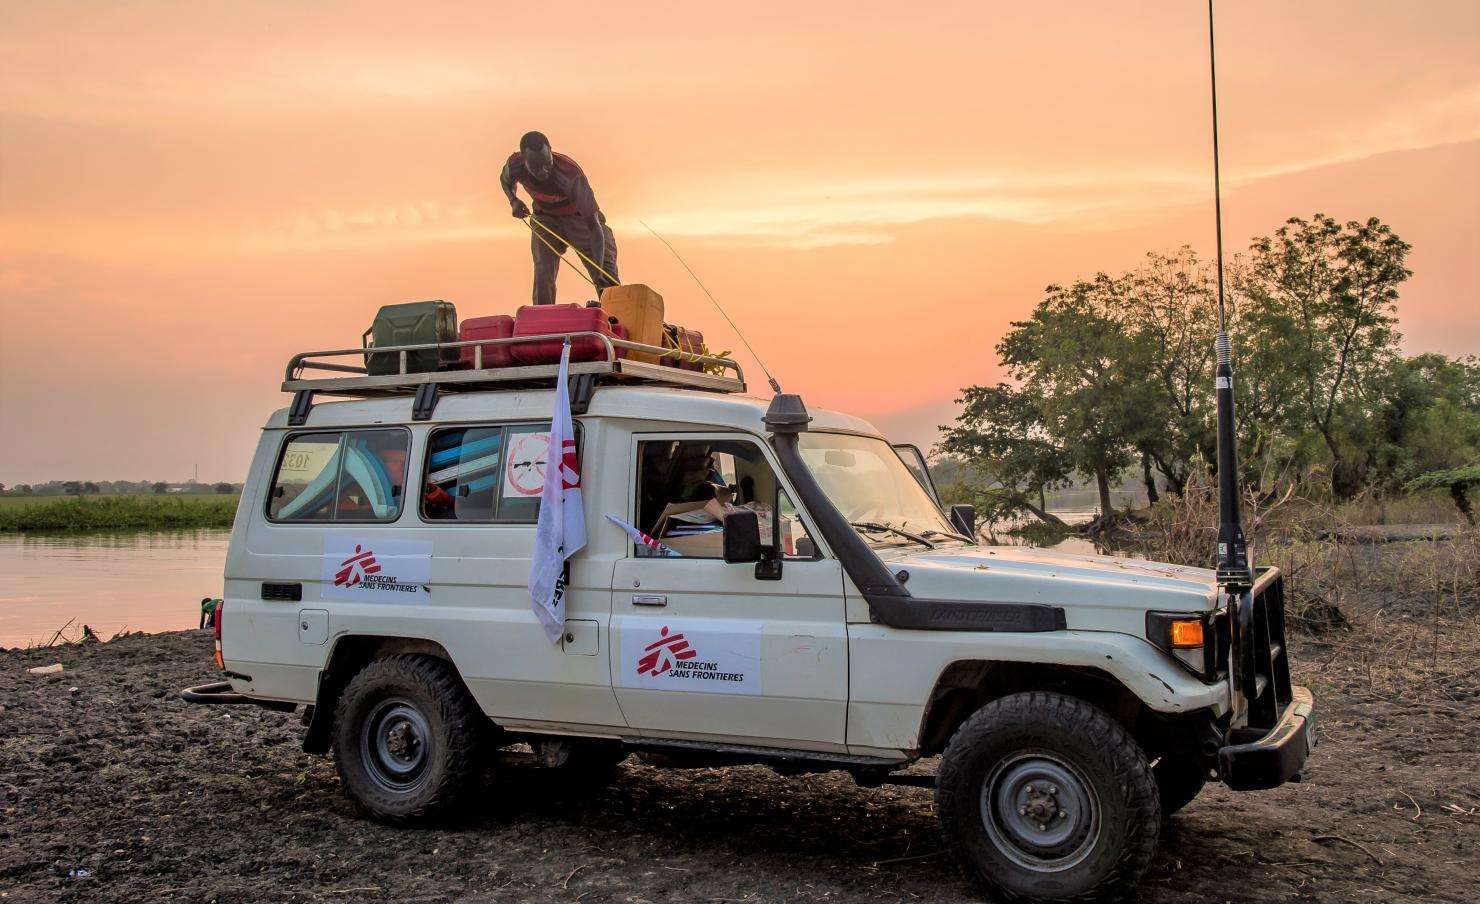 In a remote area of South Sudan, an MSF logistician, attaches to the roof of a 4x4, the equipment that a mobile clinic team has just brought back after a day of mobile boat clinics.